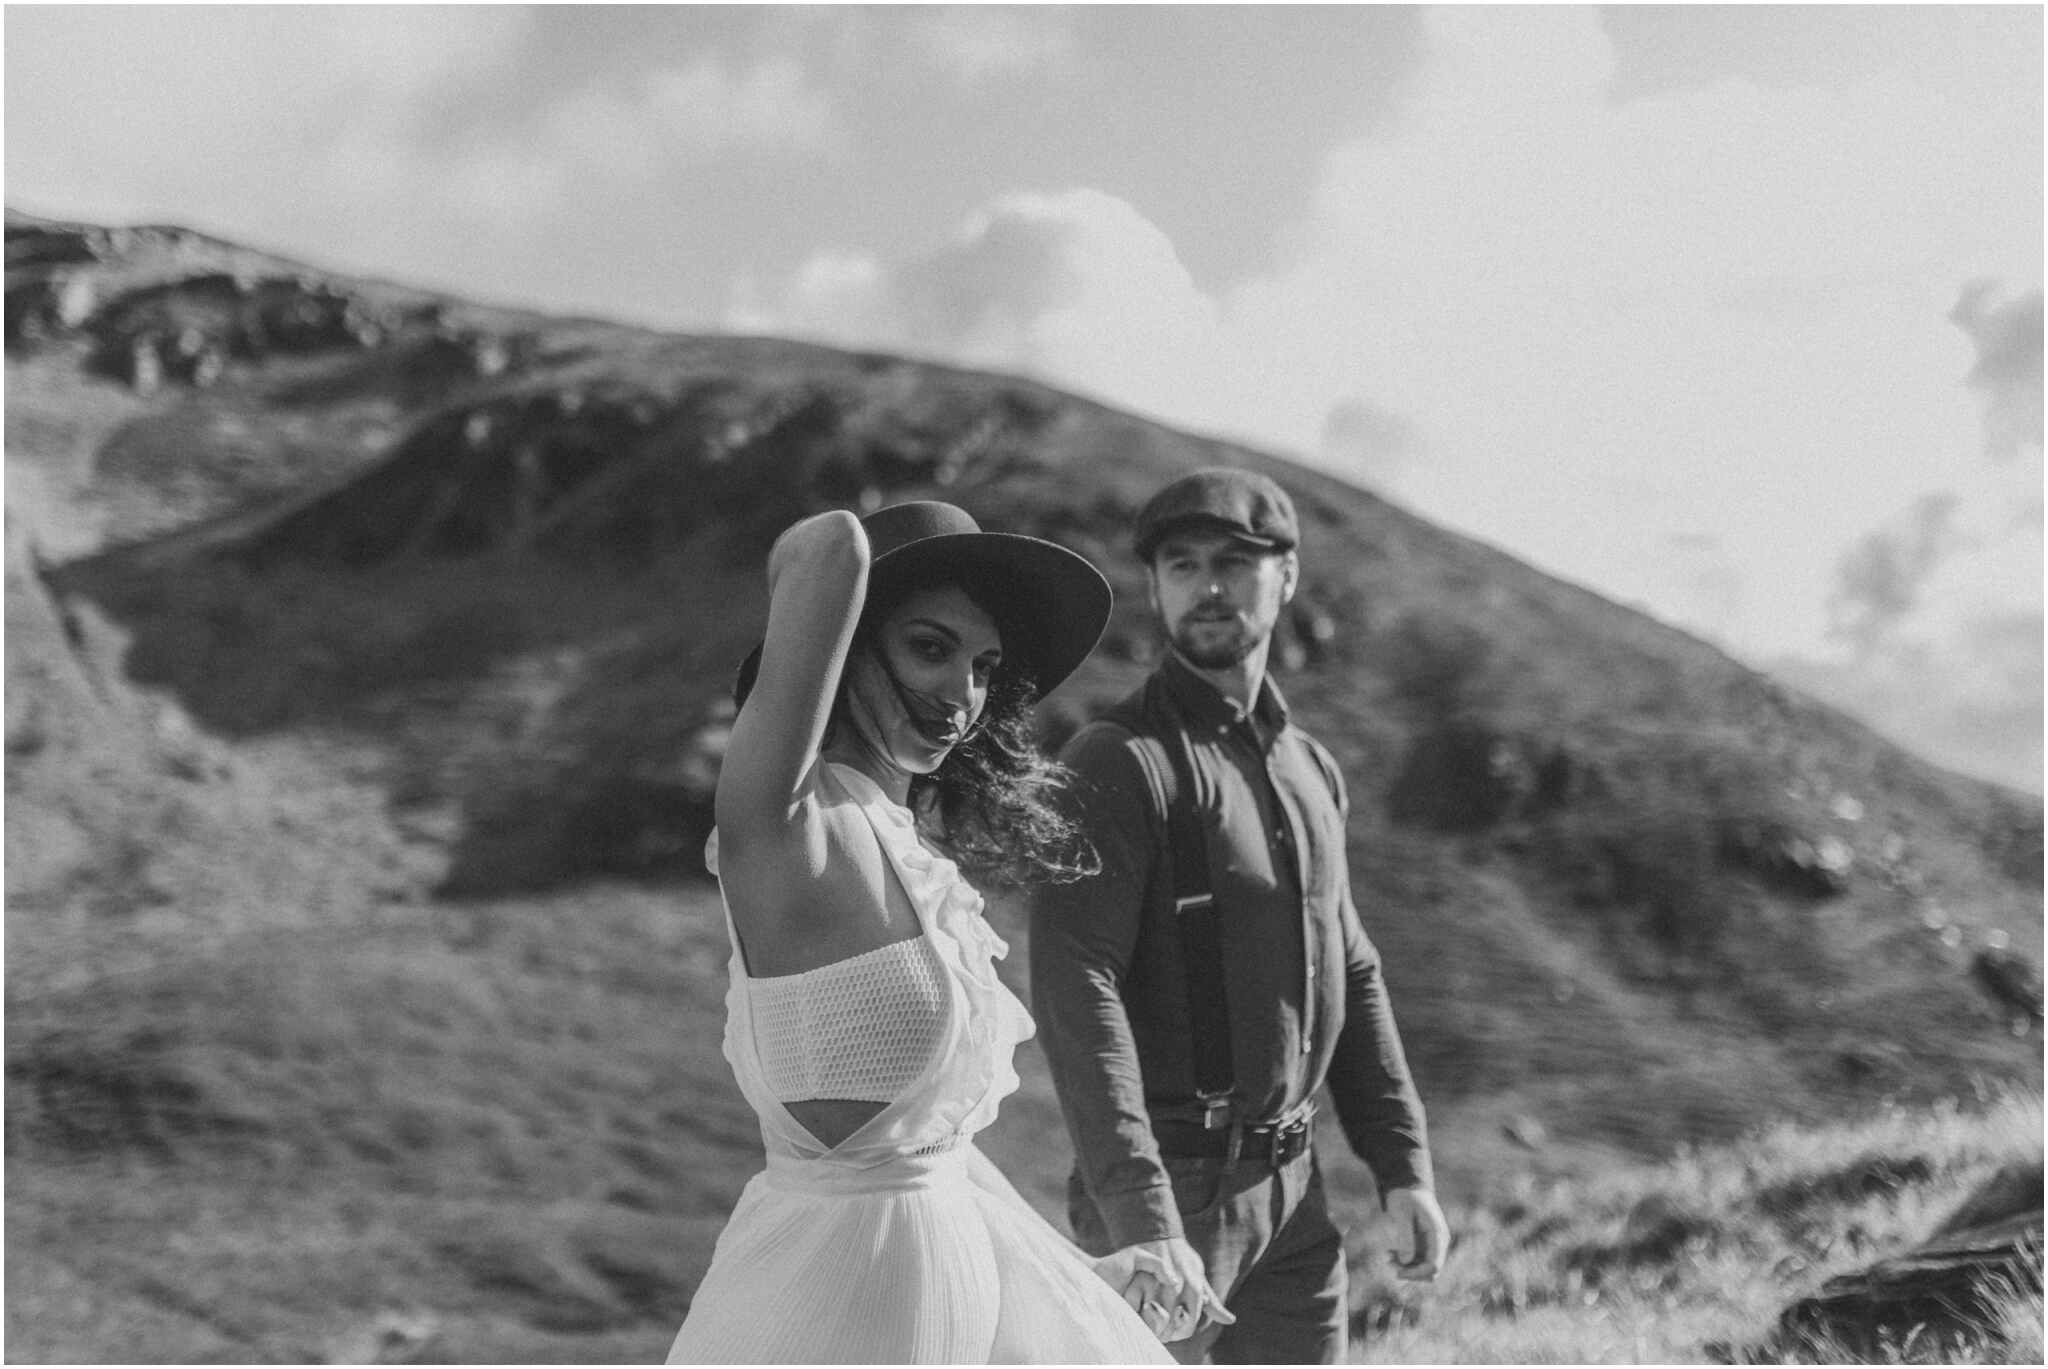 Rachel + David - Hiking Elopement in Muckish Mountain and Poisoned Glen, Donegal 5